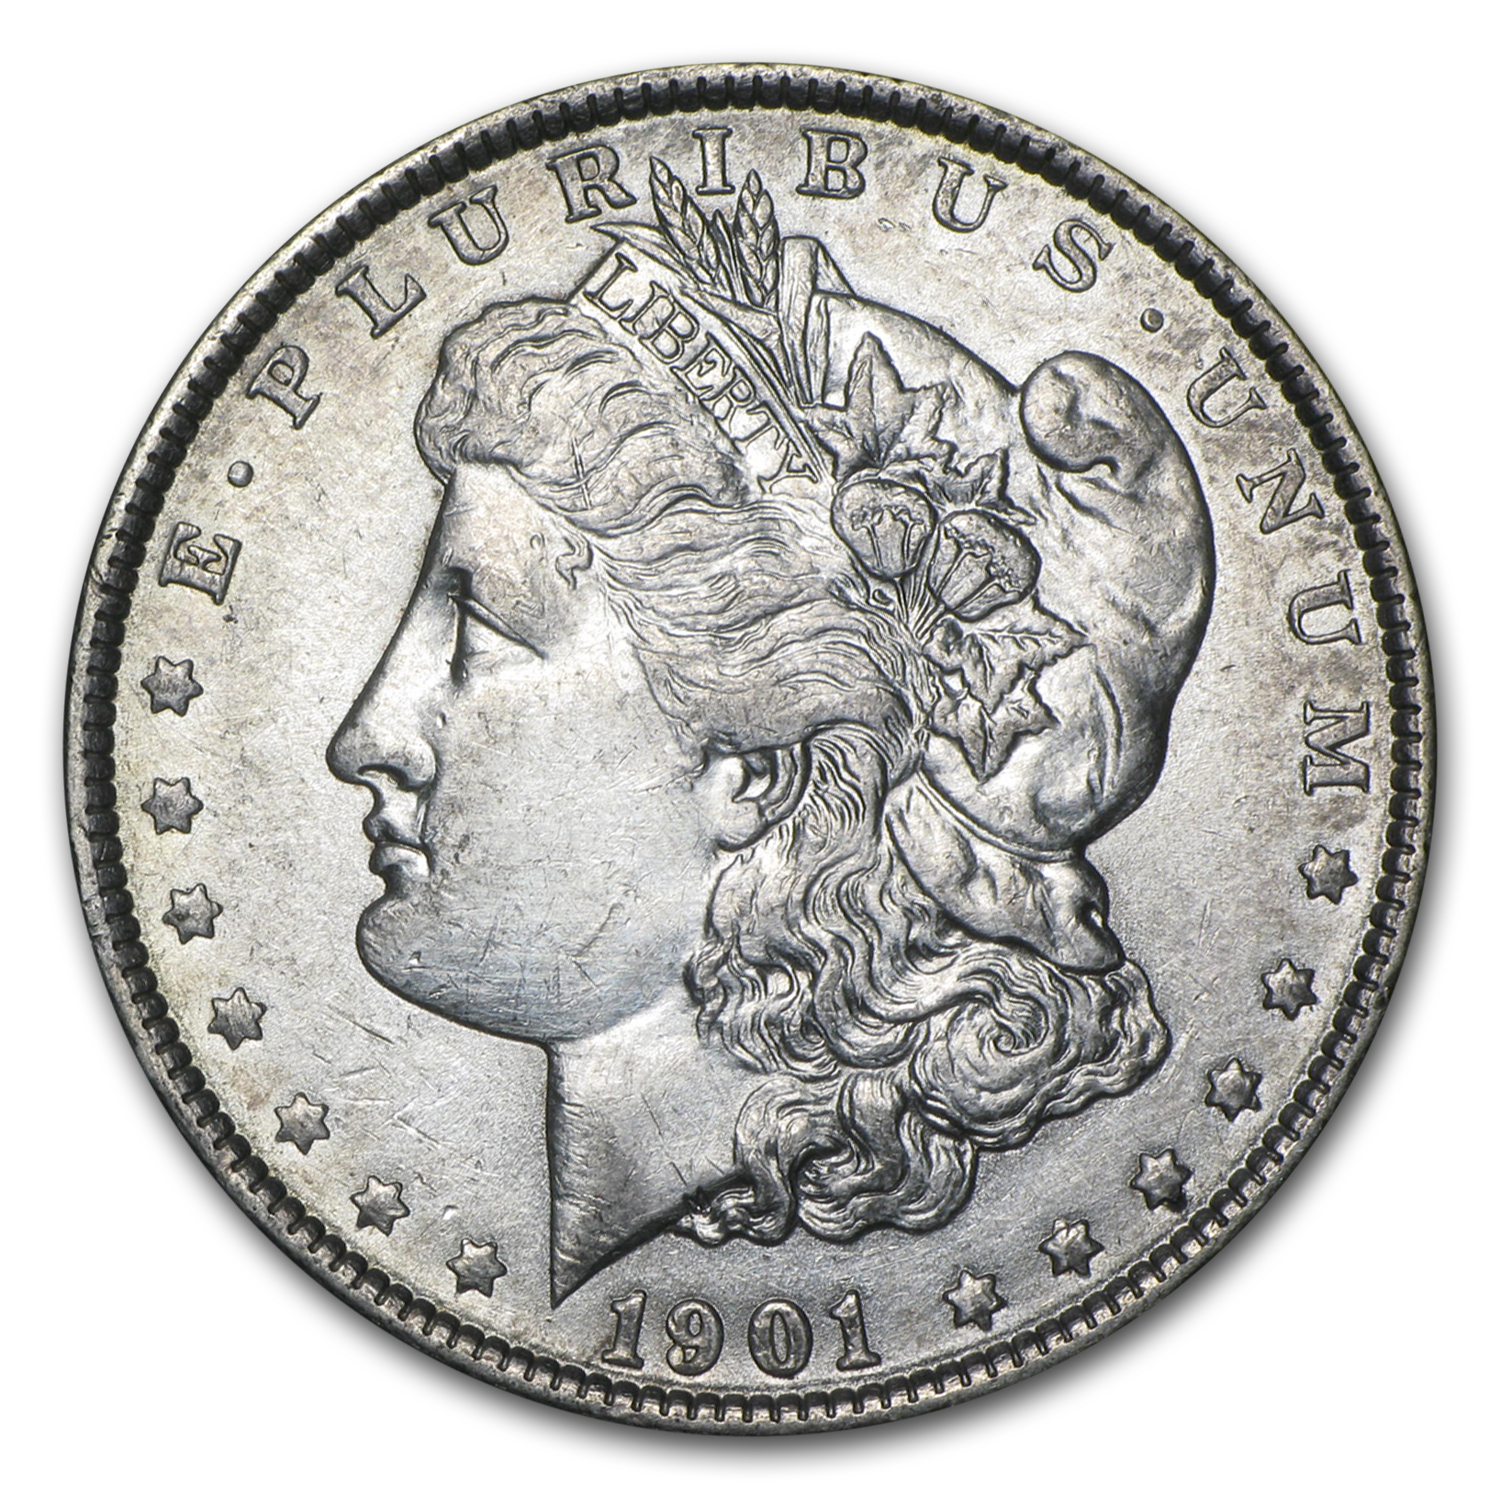 1901 Morgan Dollar - Almost Uncirculated Details - Cleaned